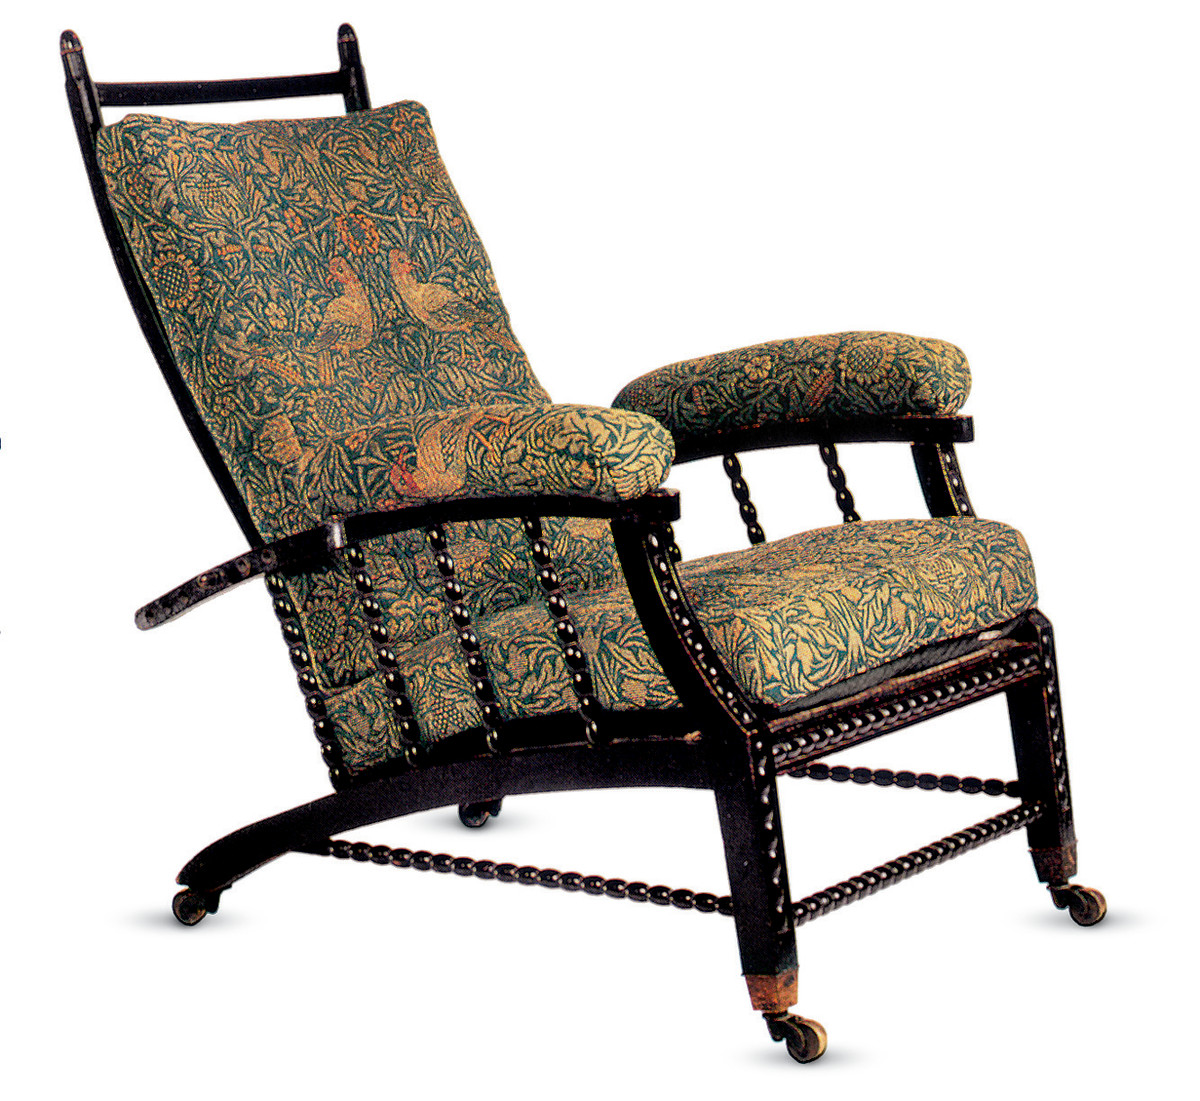 1865 Sussex England Morris Chair